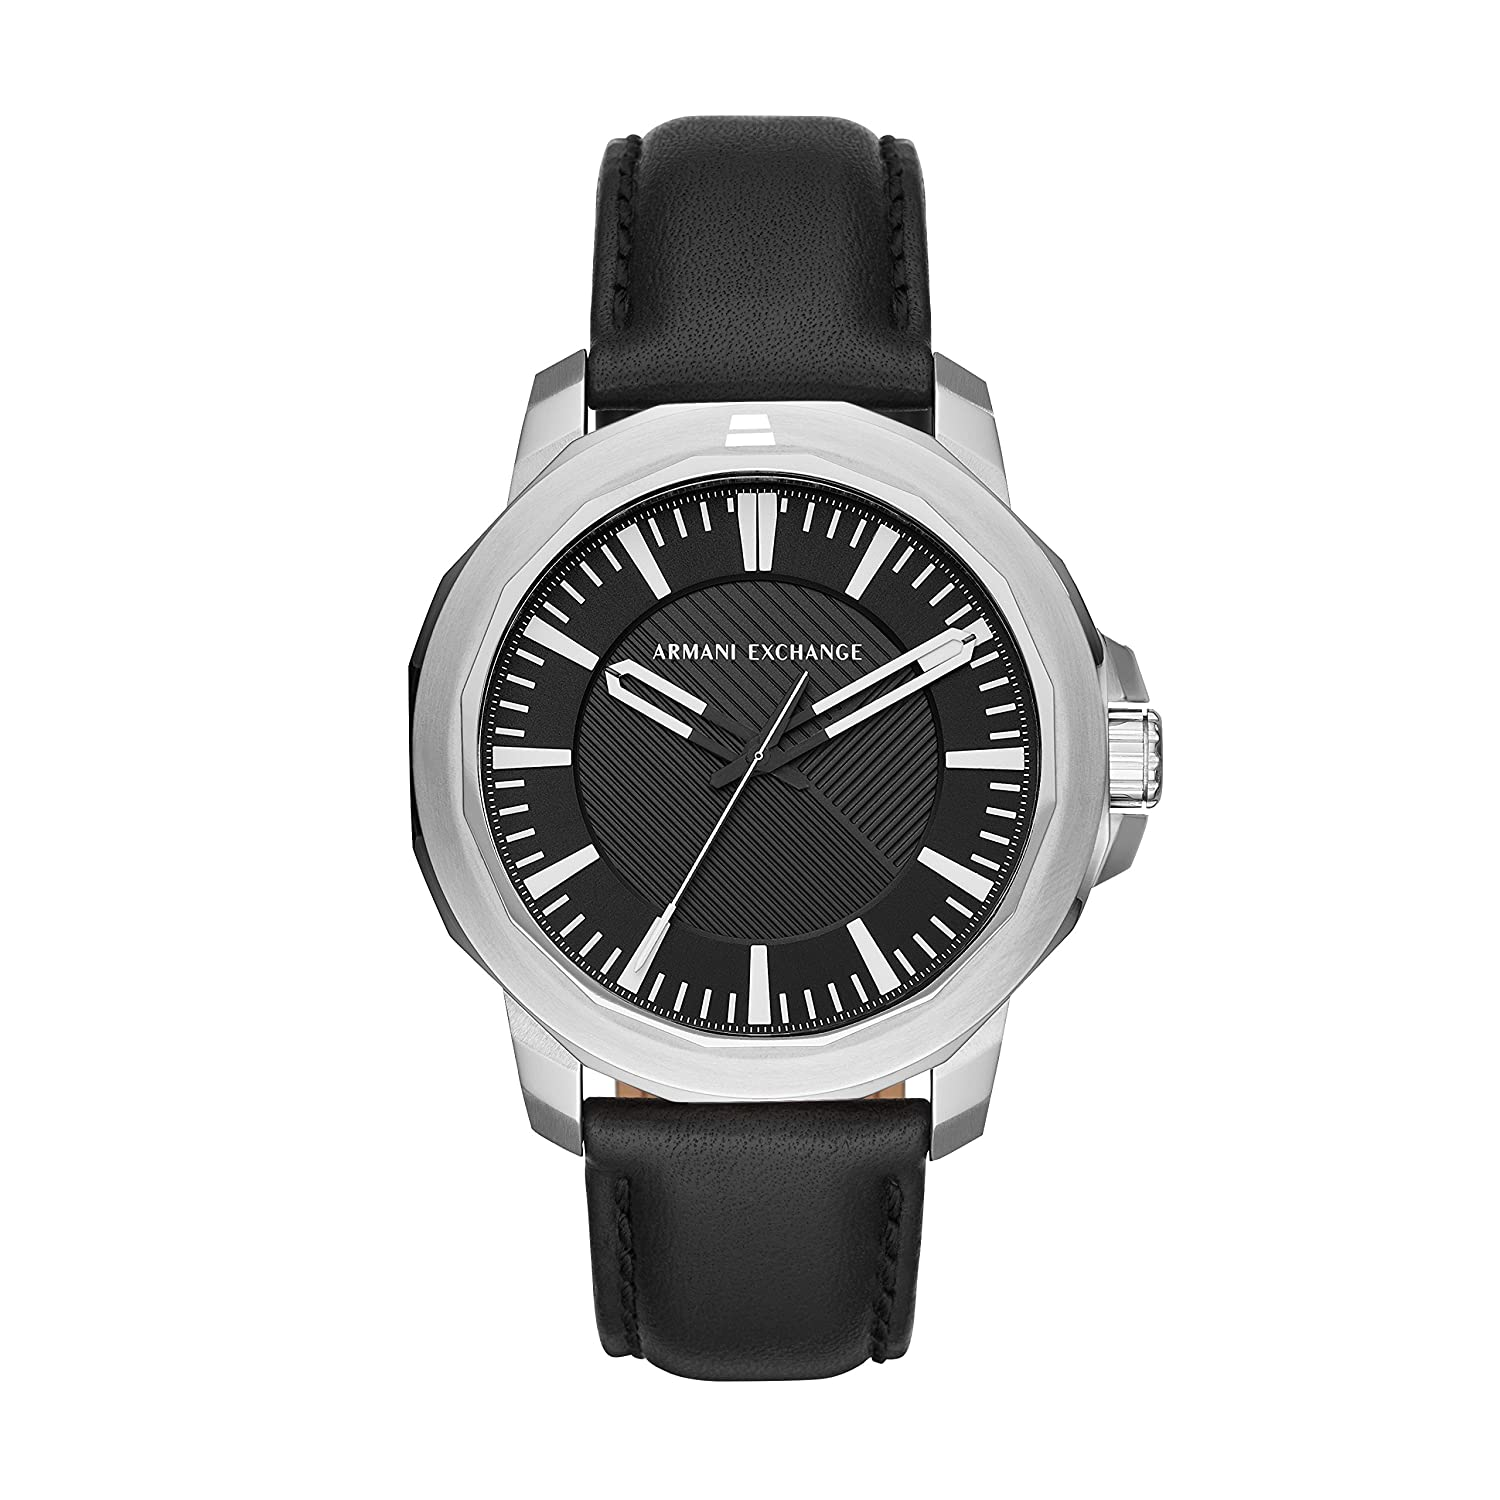 4d0fa166d2ac Amazon.com  Armani Exchange Men s Stainless Steel Analog-Quartz Watch with  Leather Calfskin Strap